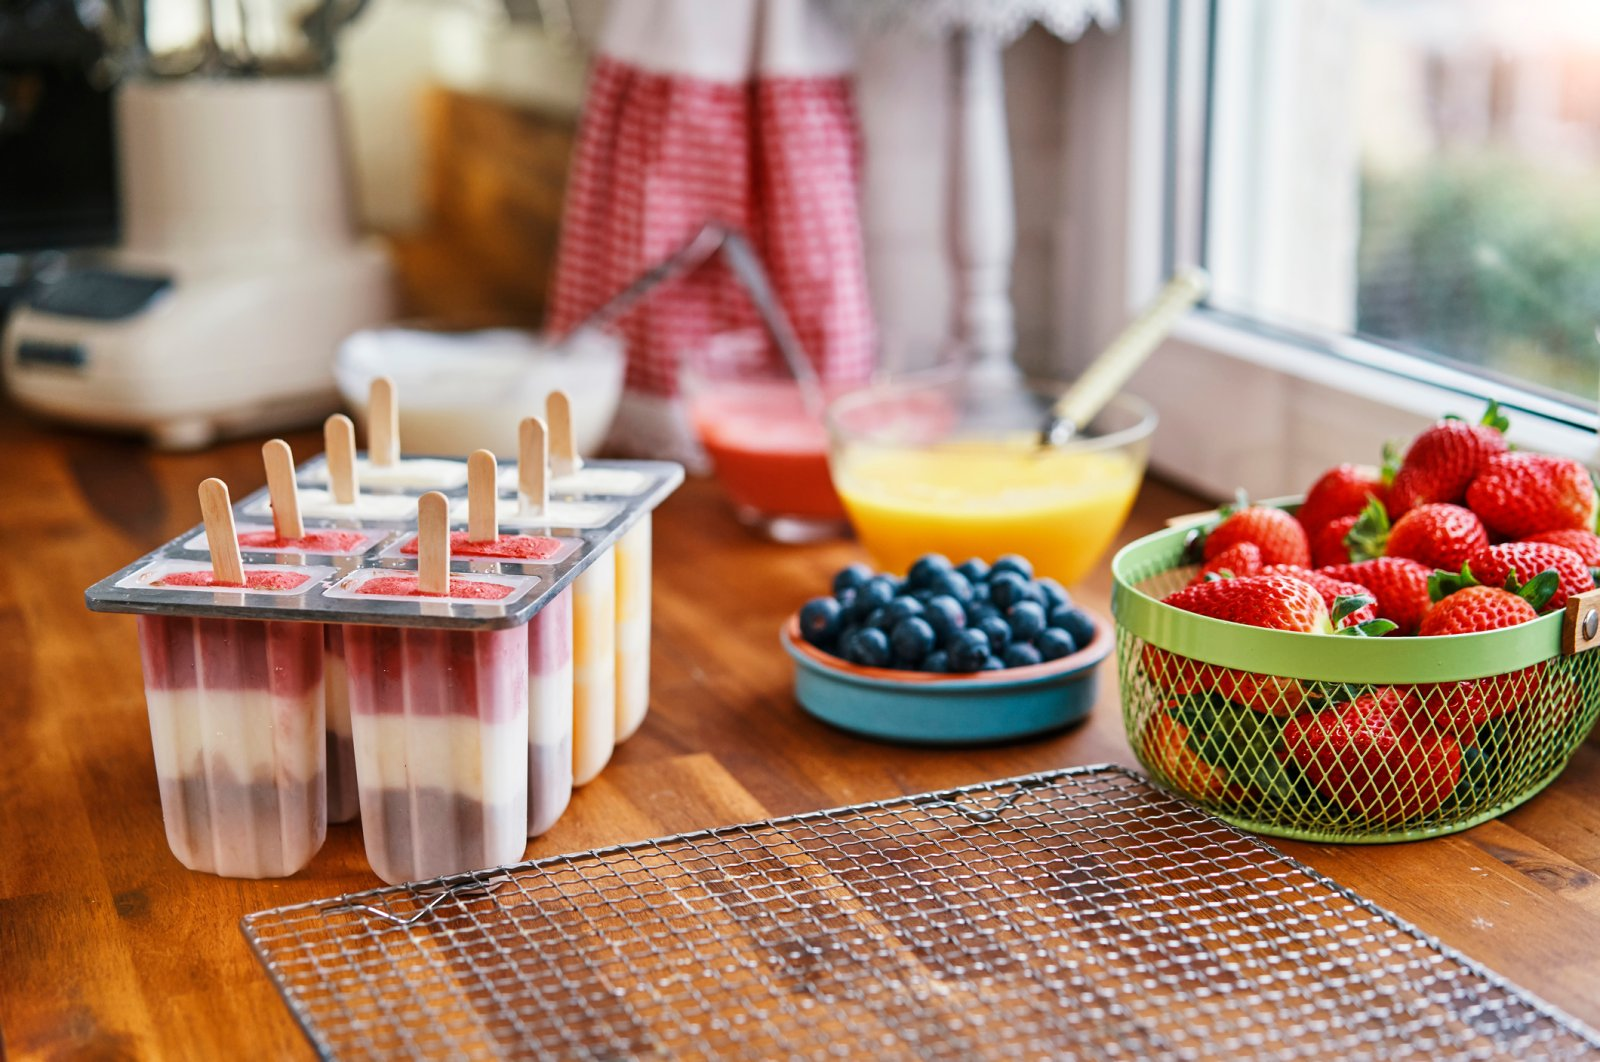 Making your own homemade yogurt popsicles is one of the easiest and healthiest ways to cool down. (iStock Photo)